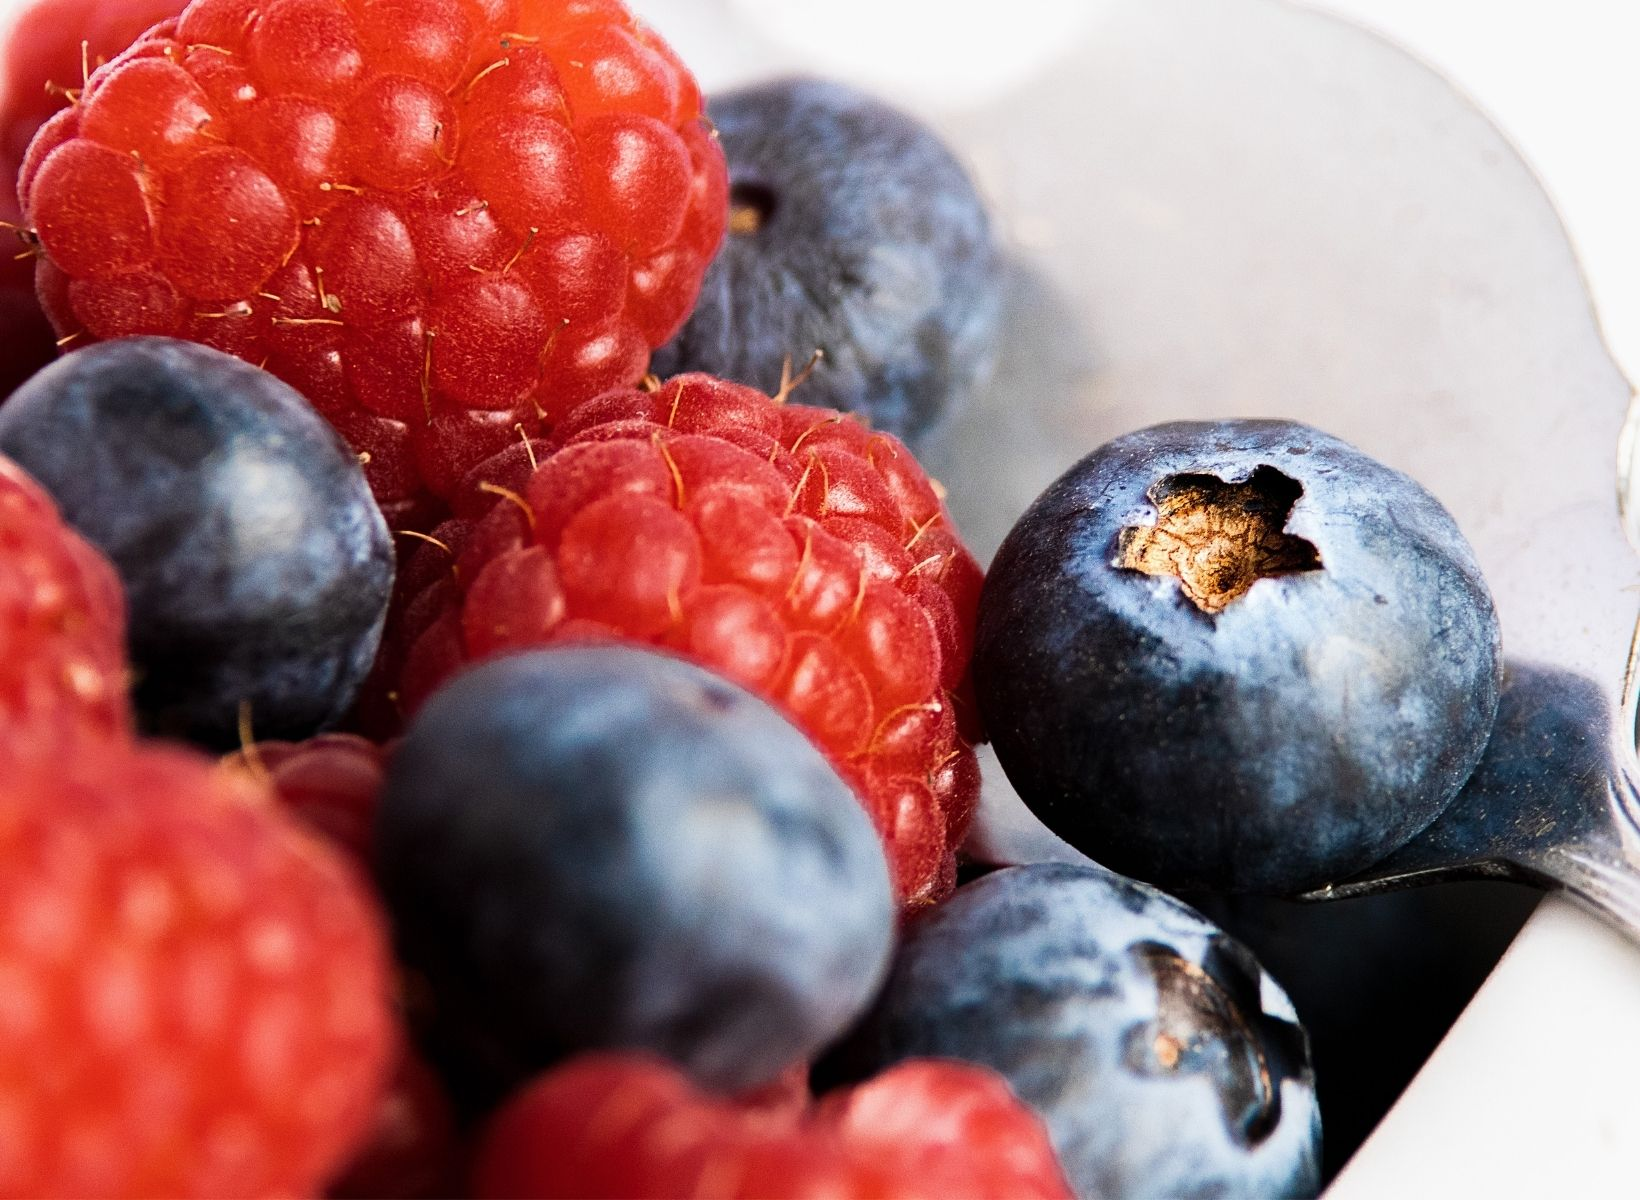 Close up shot of raspberries and blueberries in a bowl with a spoon